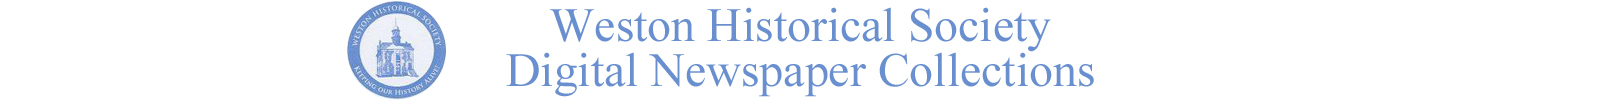 Weston Historical Society Digital Newspaper Collections